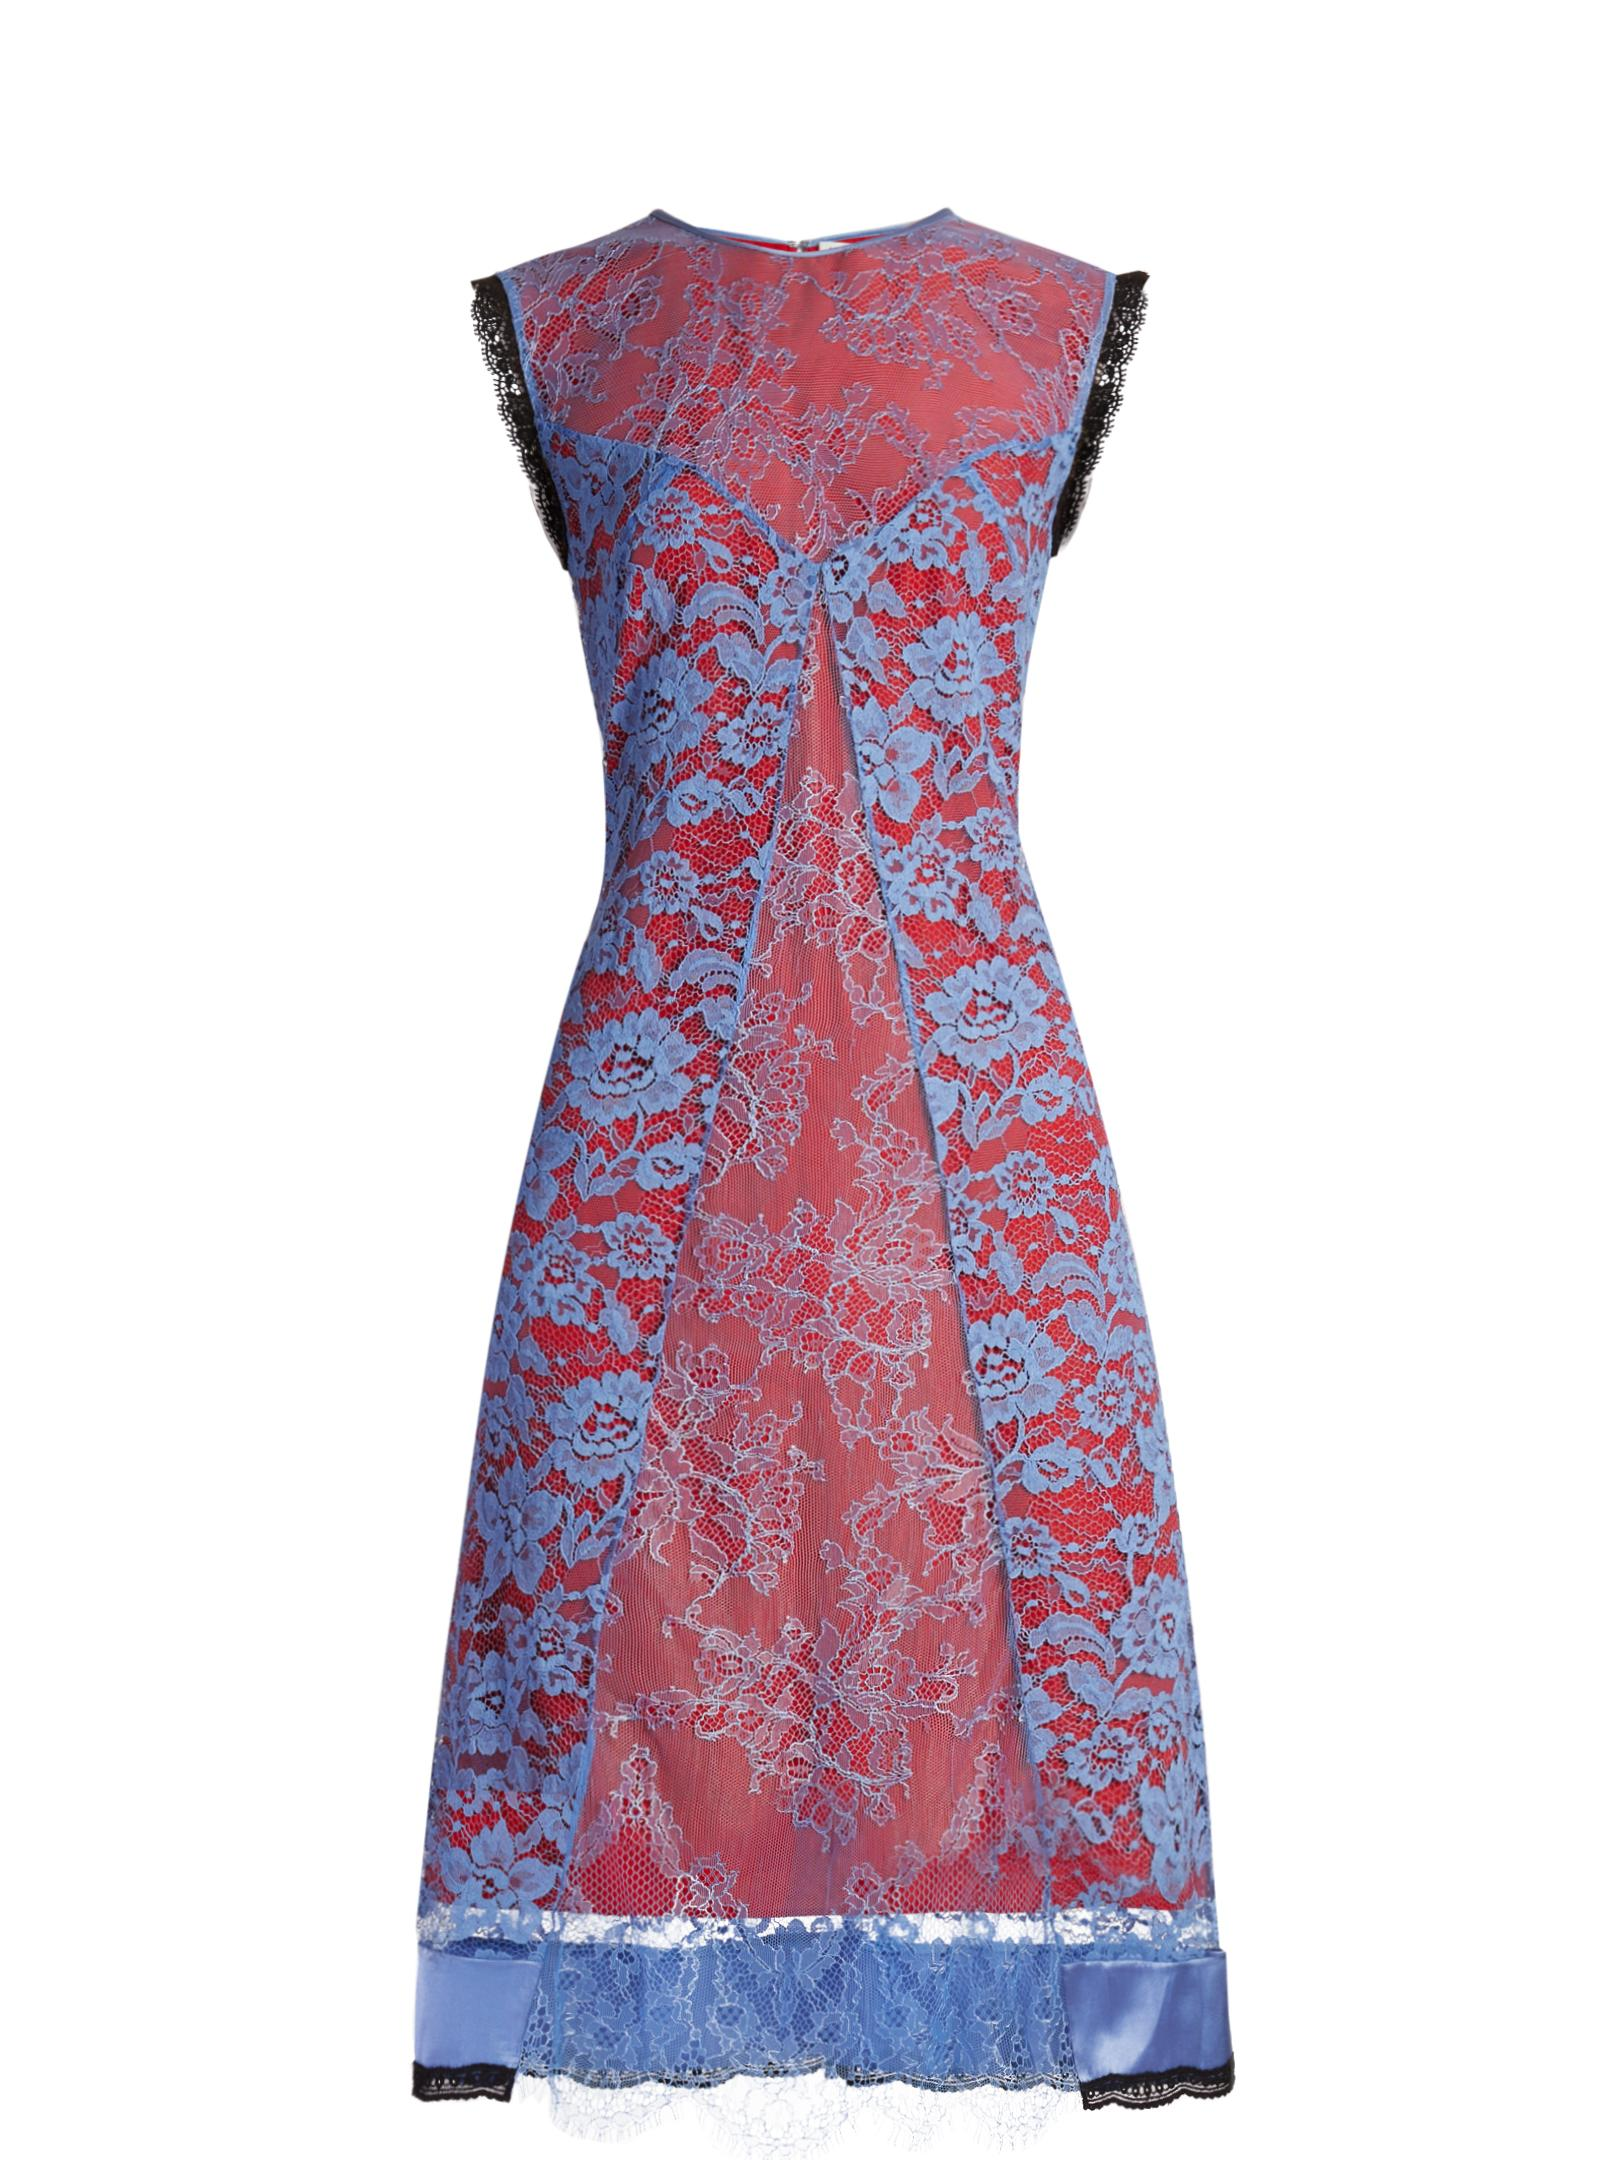 ALTUZARRA Harry Lace-Overlay Dress Image